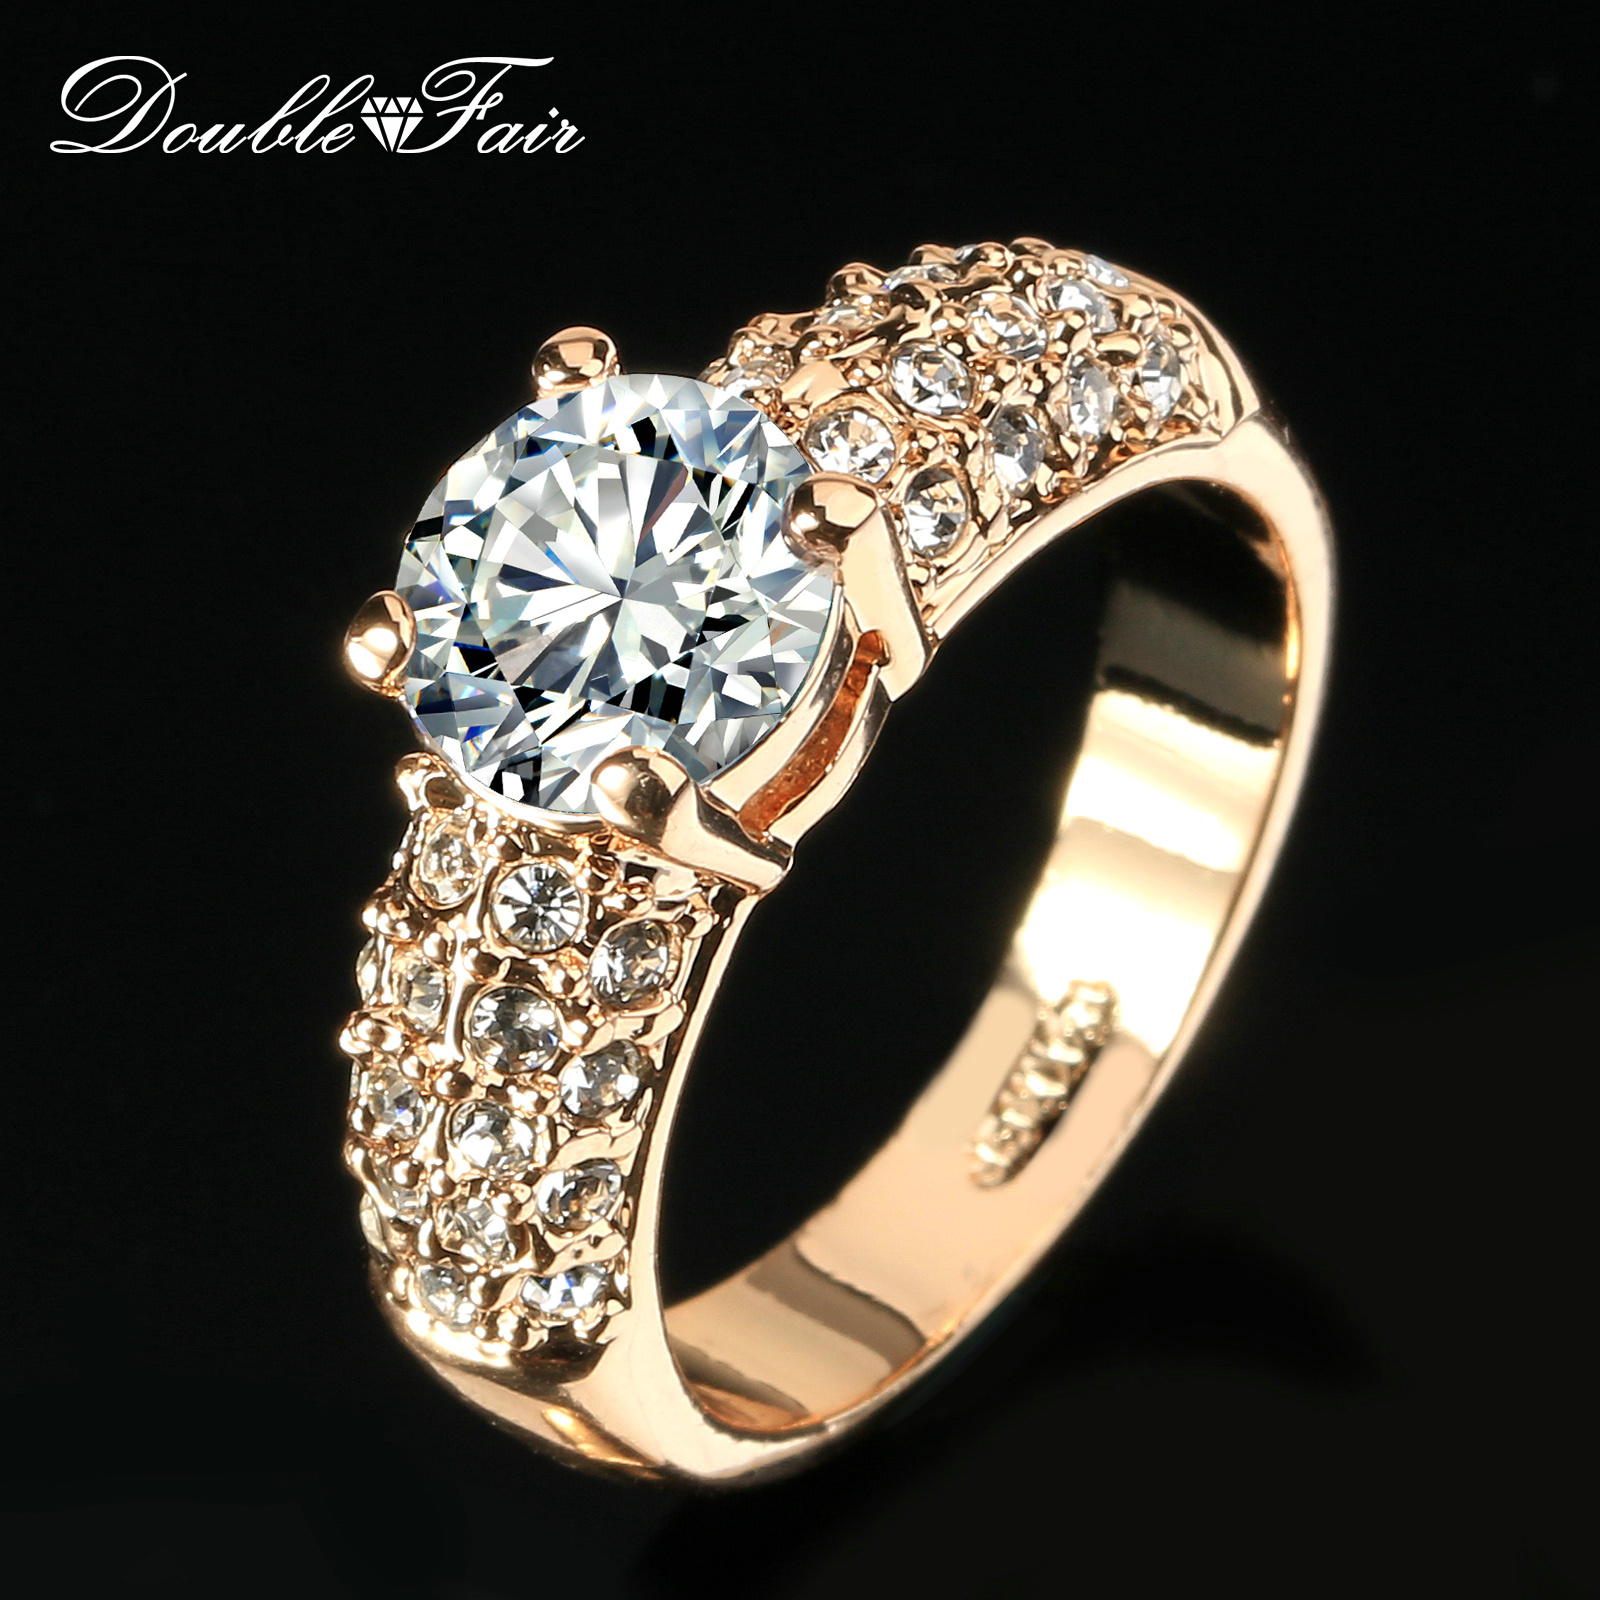 Engagement Wedding Rings Cz Diamond Rose Gold Plated Fashion Brand  Rhinestone Ring Jewelry Gift For Women Anel Wholesale Dfr105